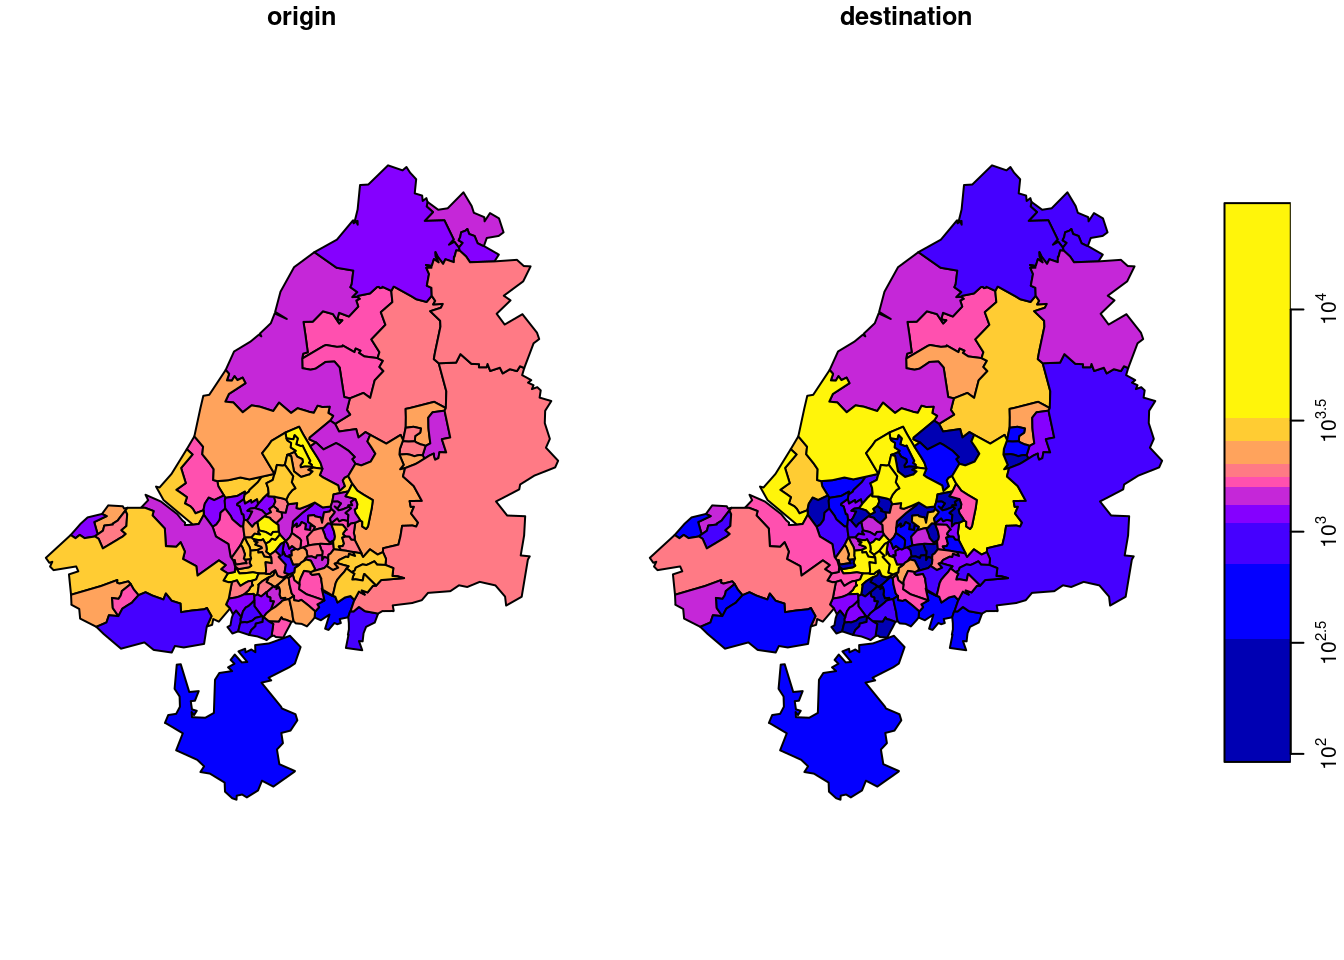 total commutes, summed by origin (left) or destination (right).